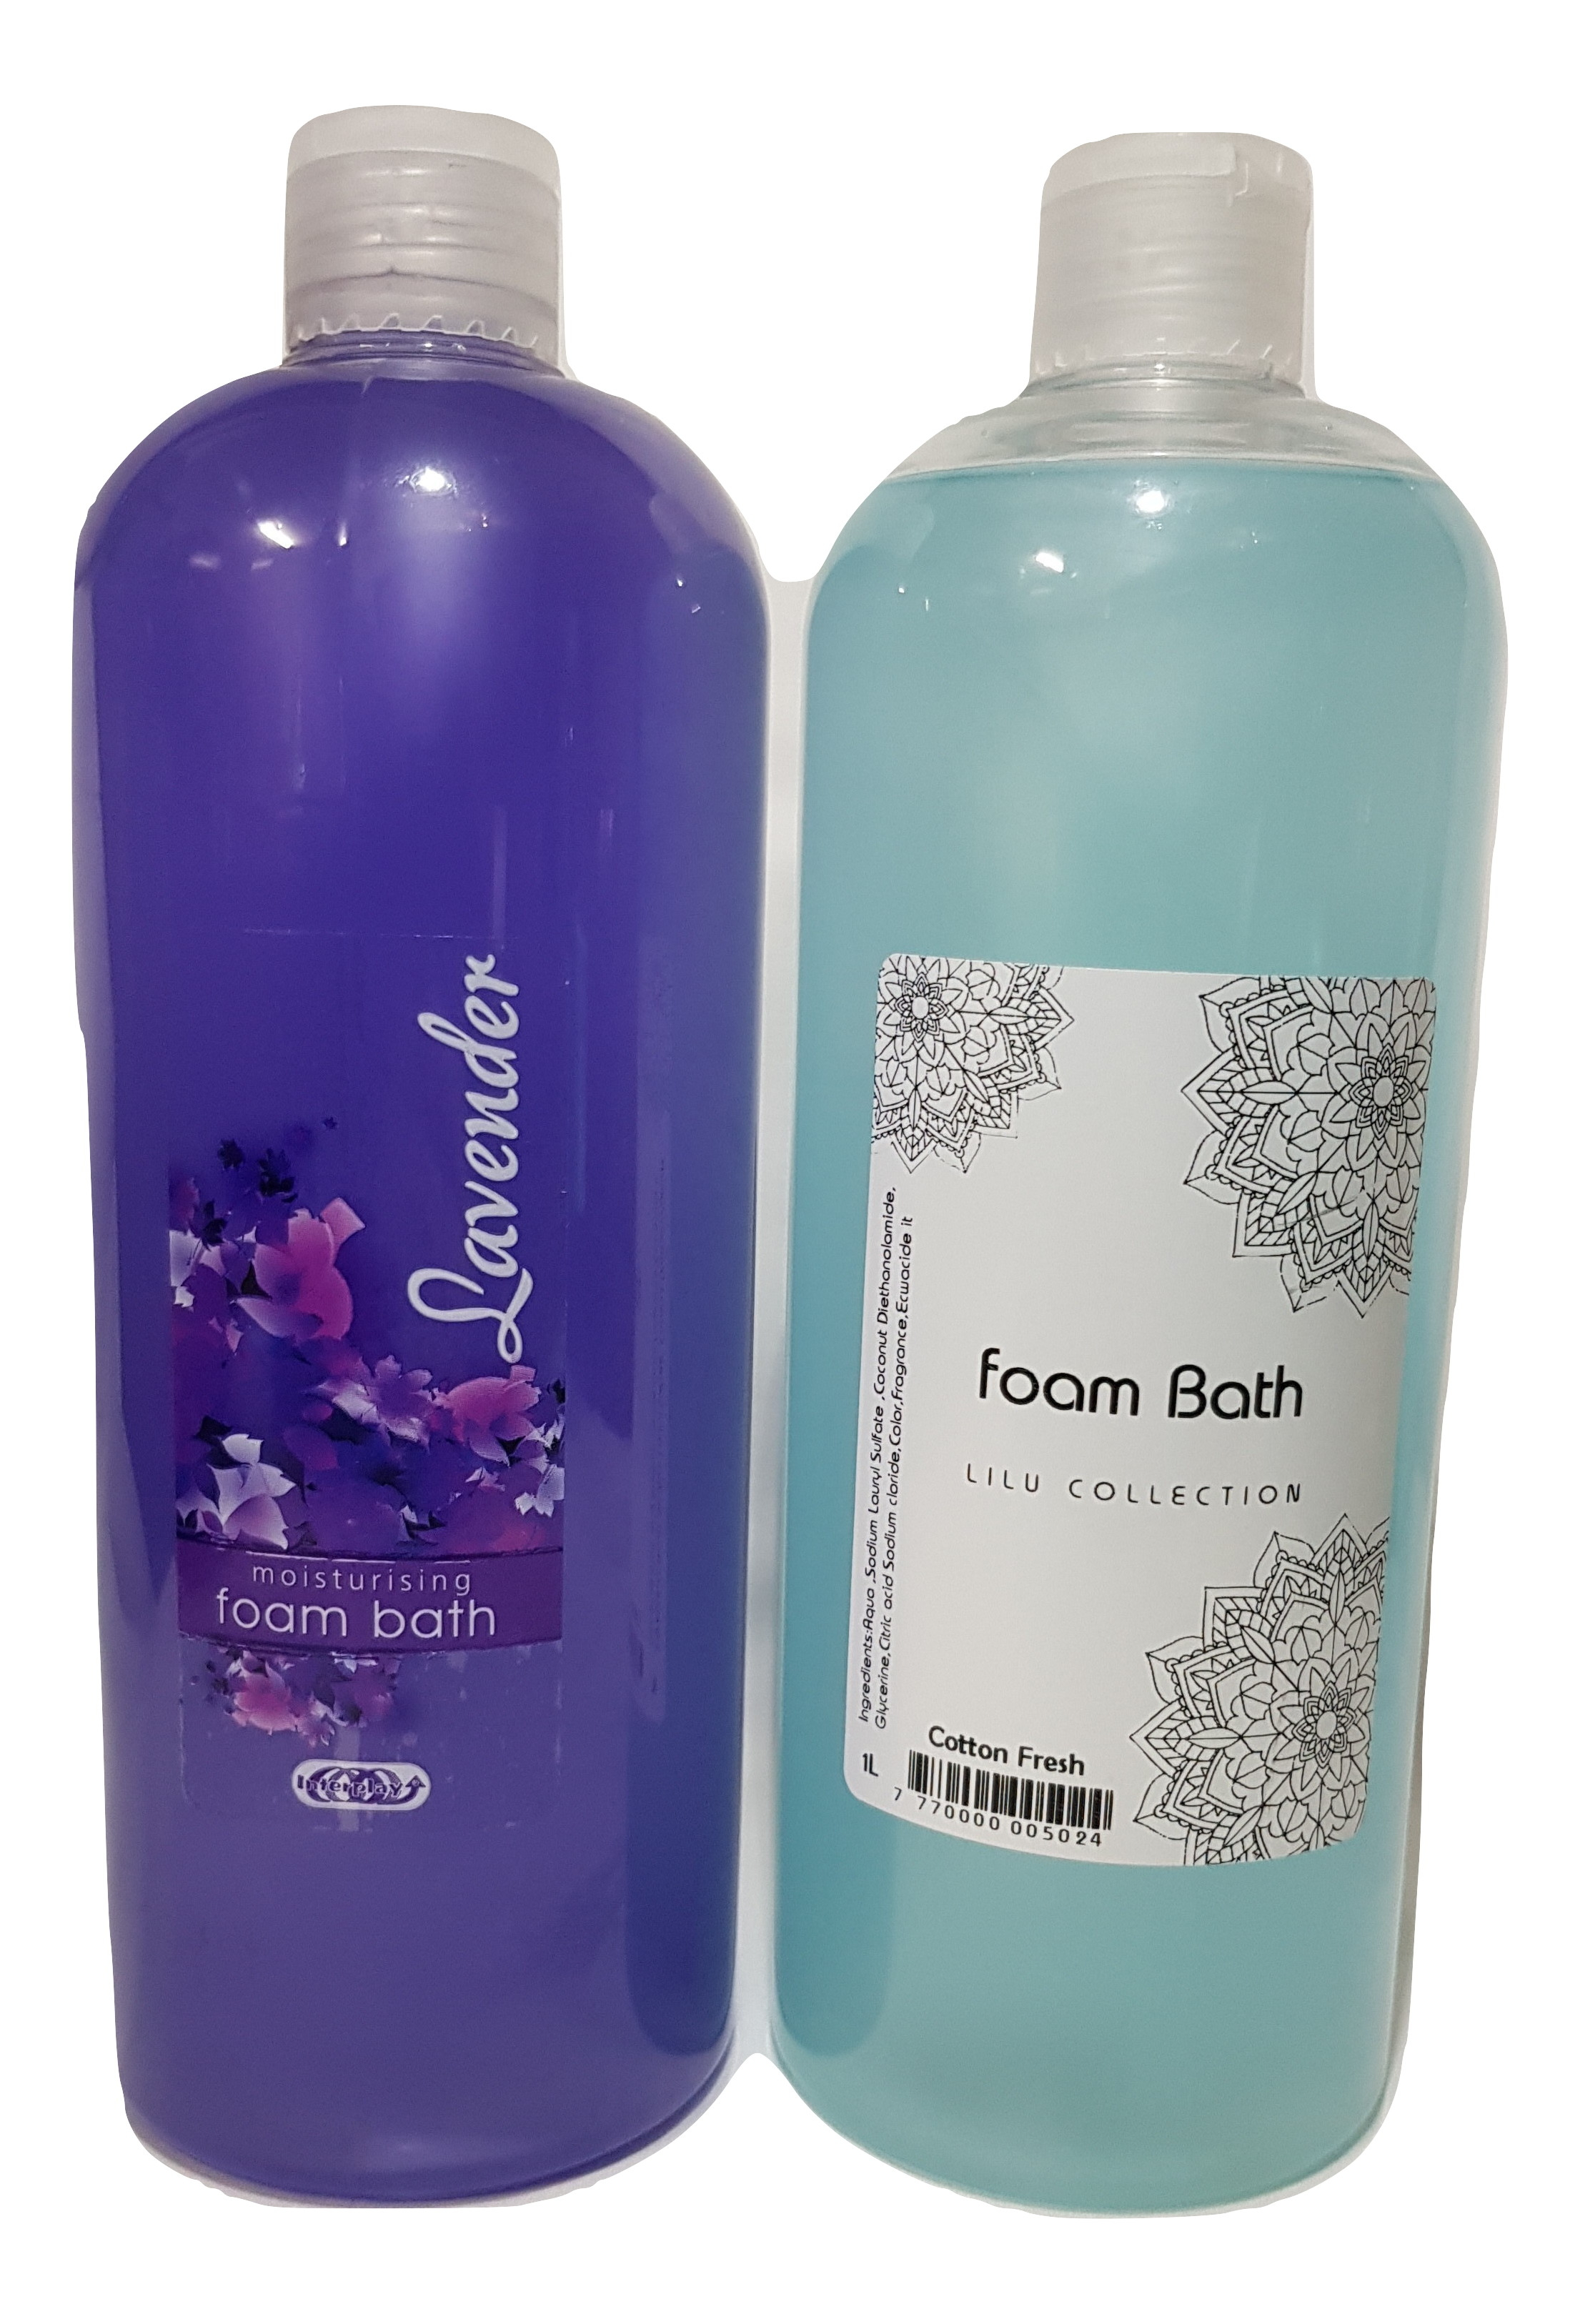 foam-bath-bubble-bath